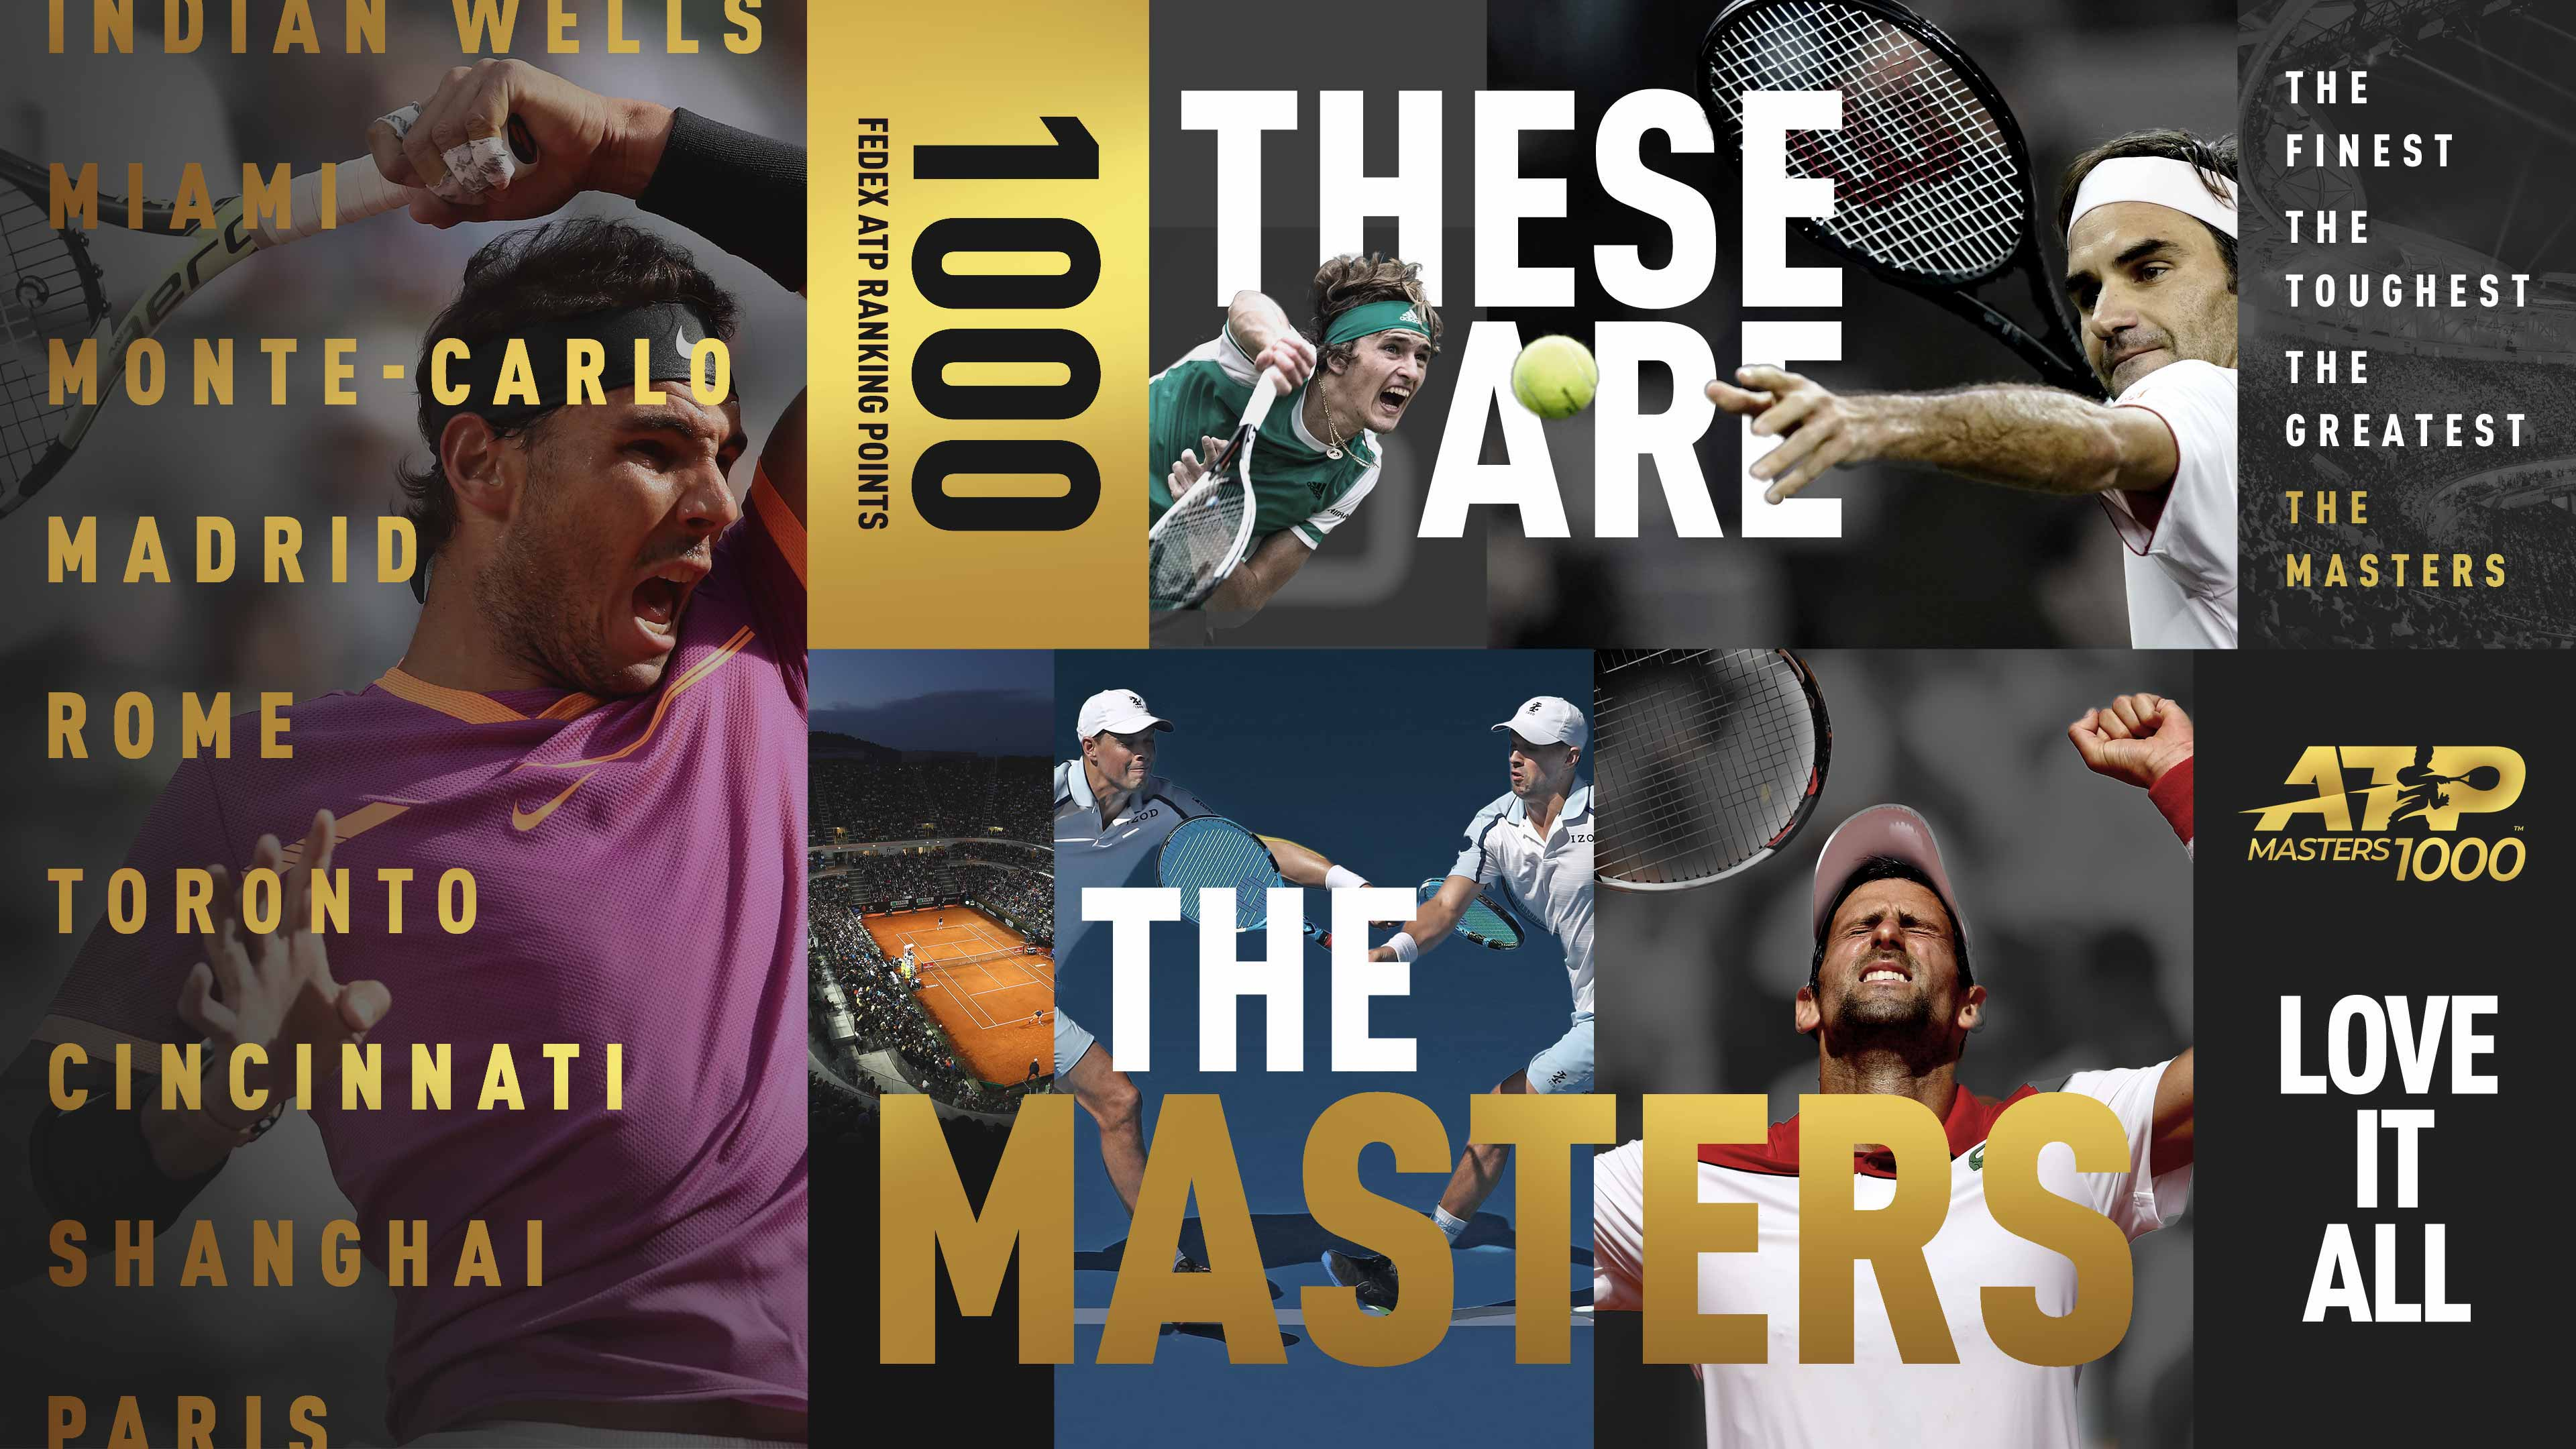 These Are The Masters | ATP Masters 1000 | Nadal, Djokovic, Federer, Bryans